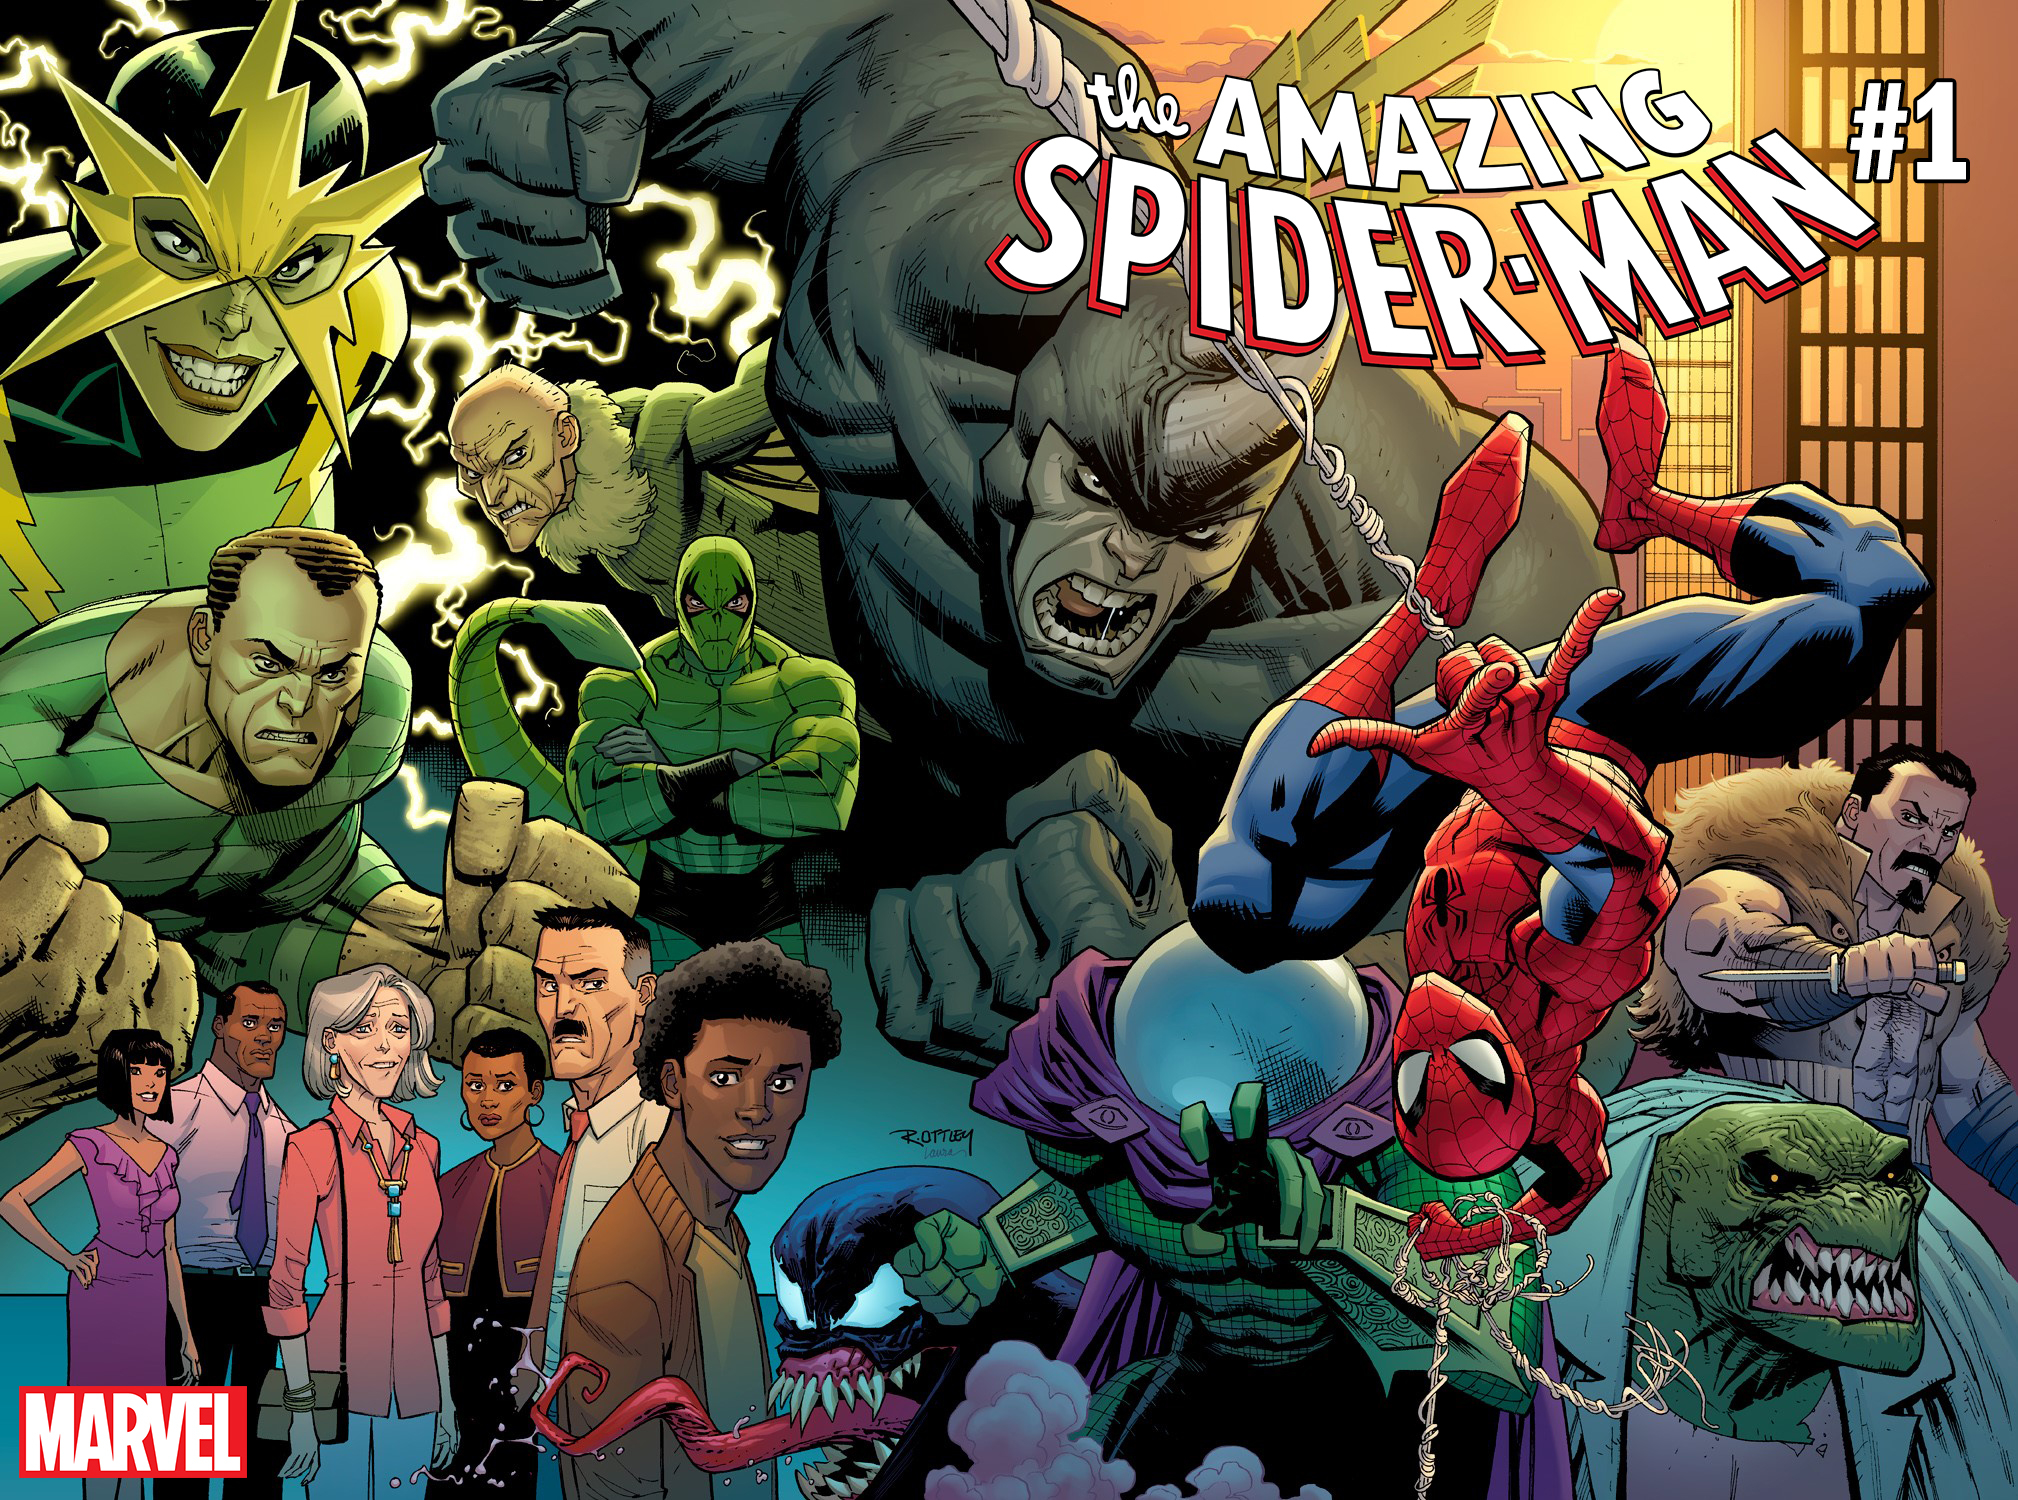 Amazing Spider-Man  seems to be in good hands with Nick Spencer and Ryan Ottley.